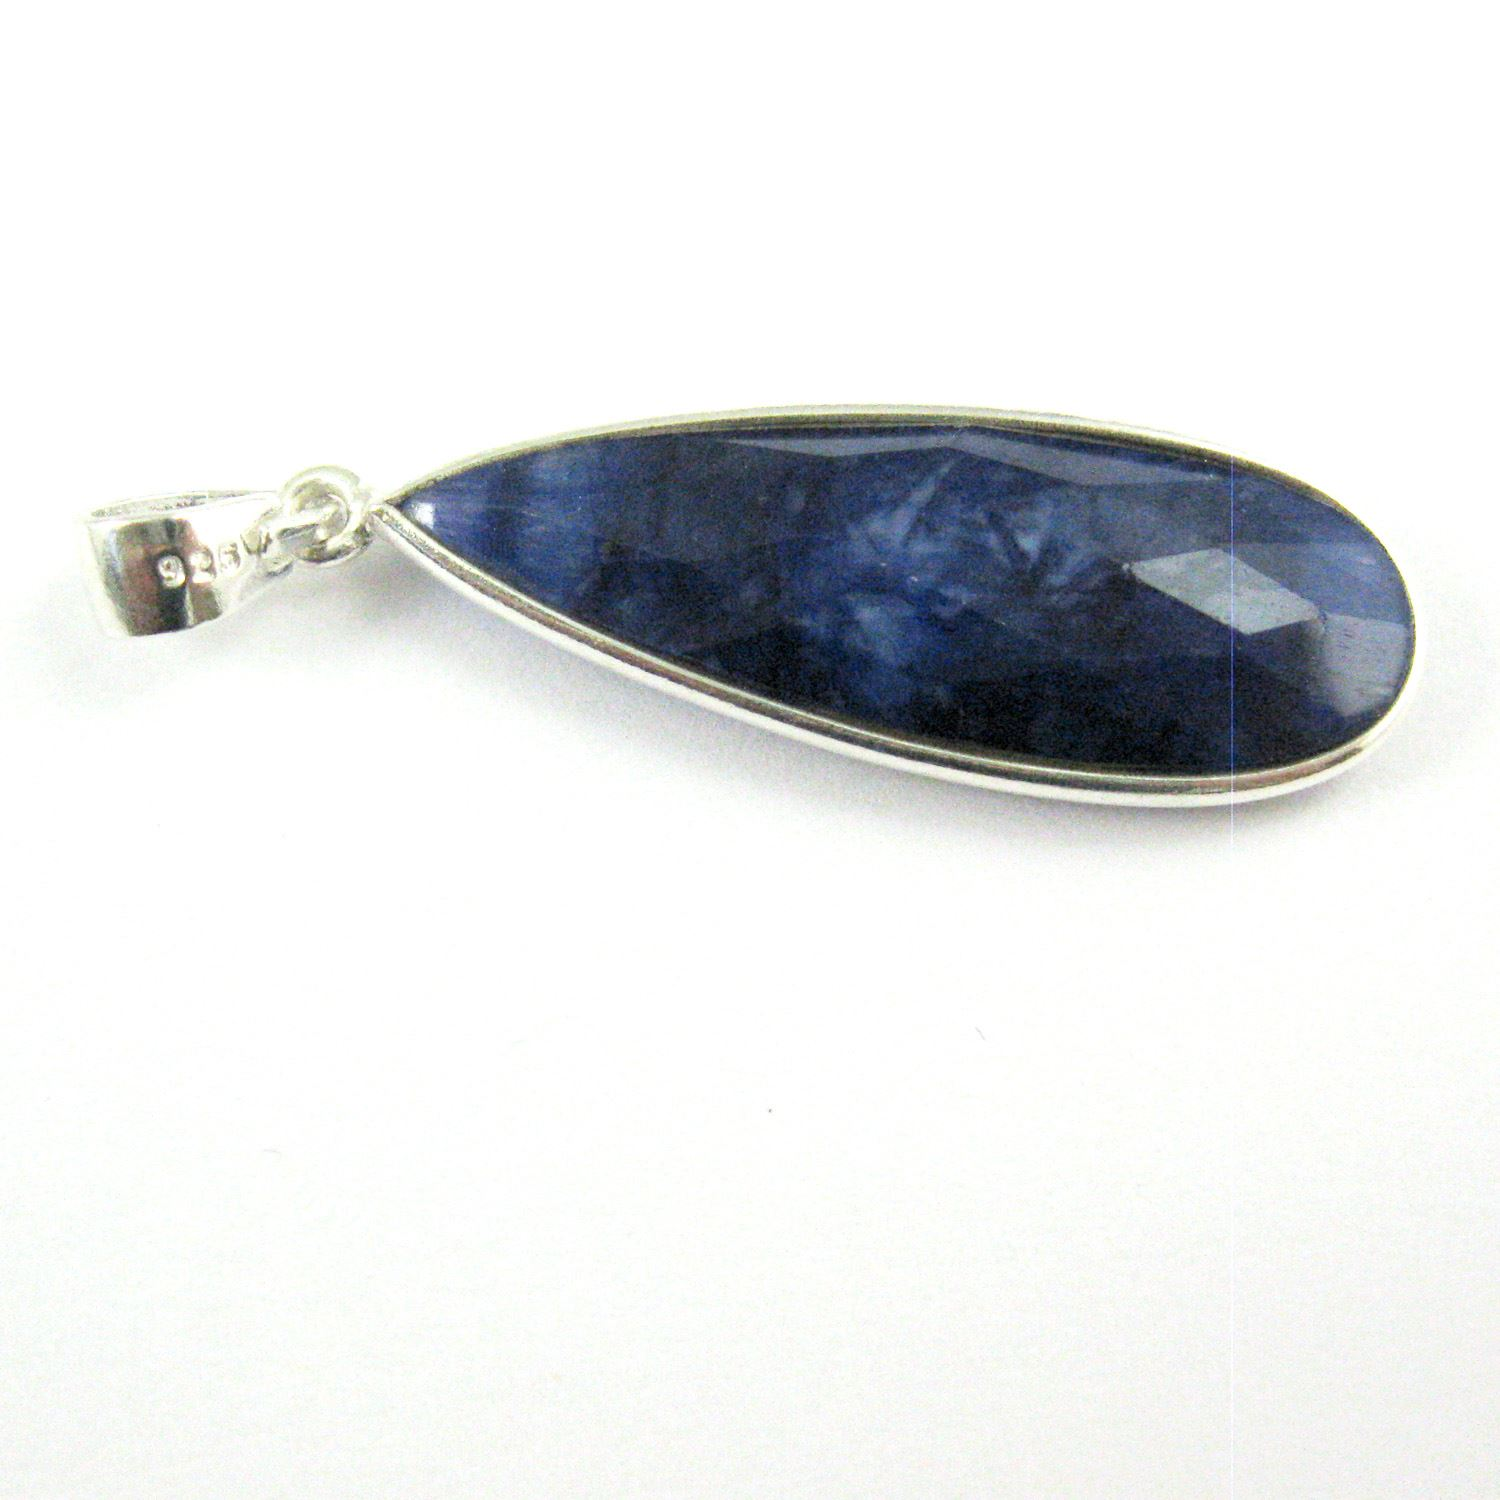 Bezel Gemstone Pendant with Bail - Sterling Silver Elongated Teardrpo Gem Pendant - Ready for Necklace - 40mm - Blue Sapphire Dyed